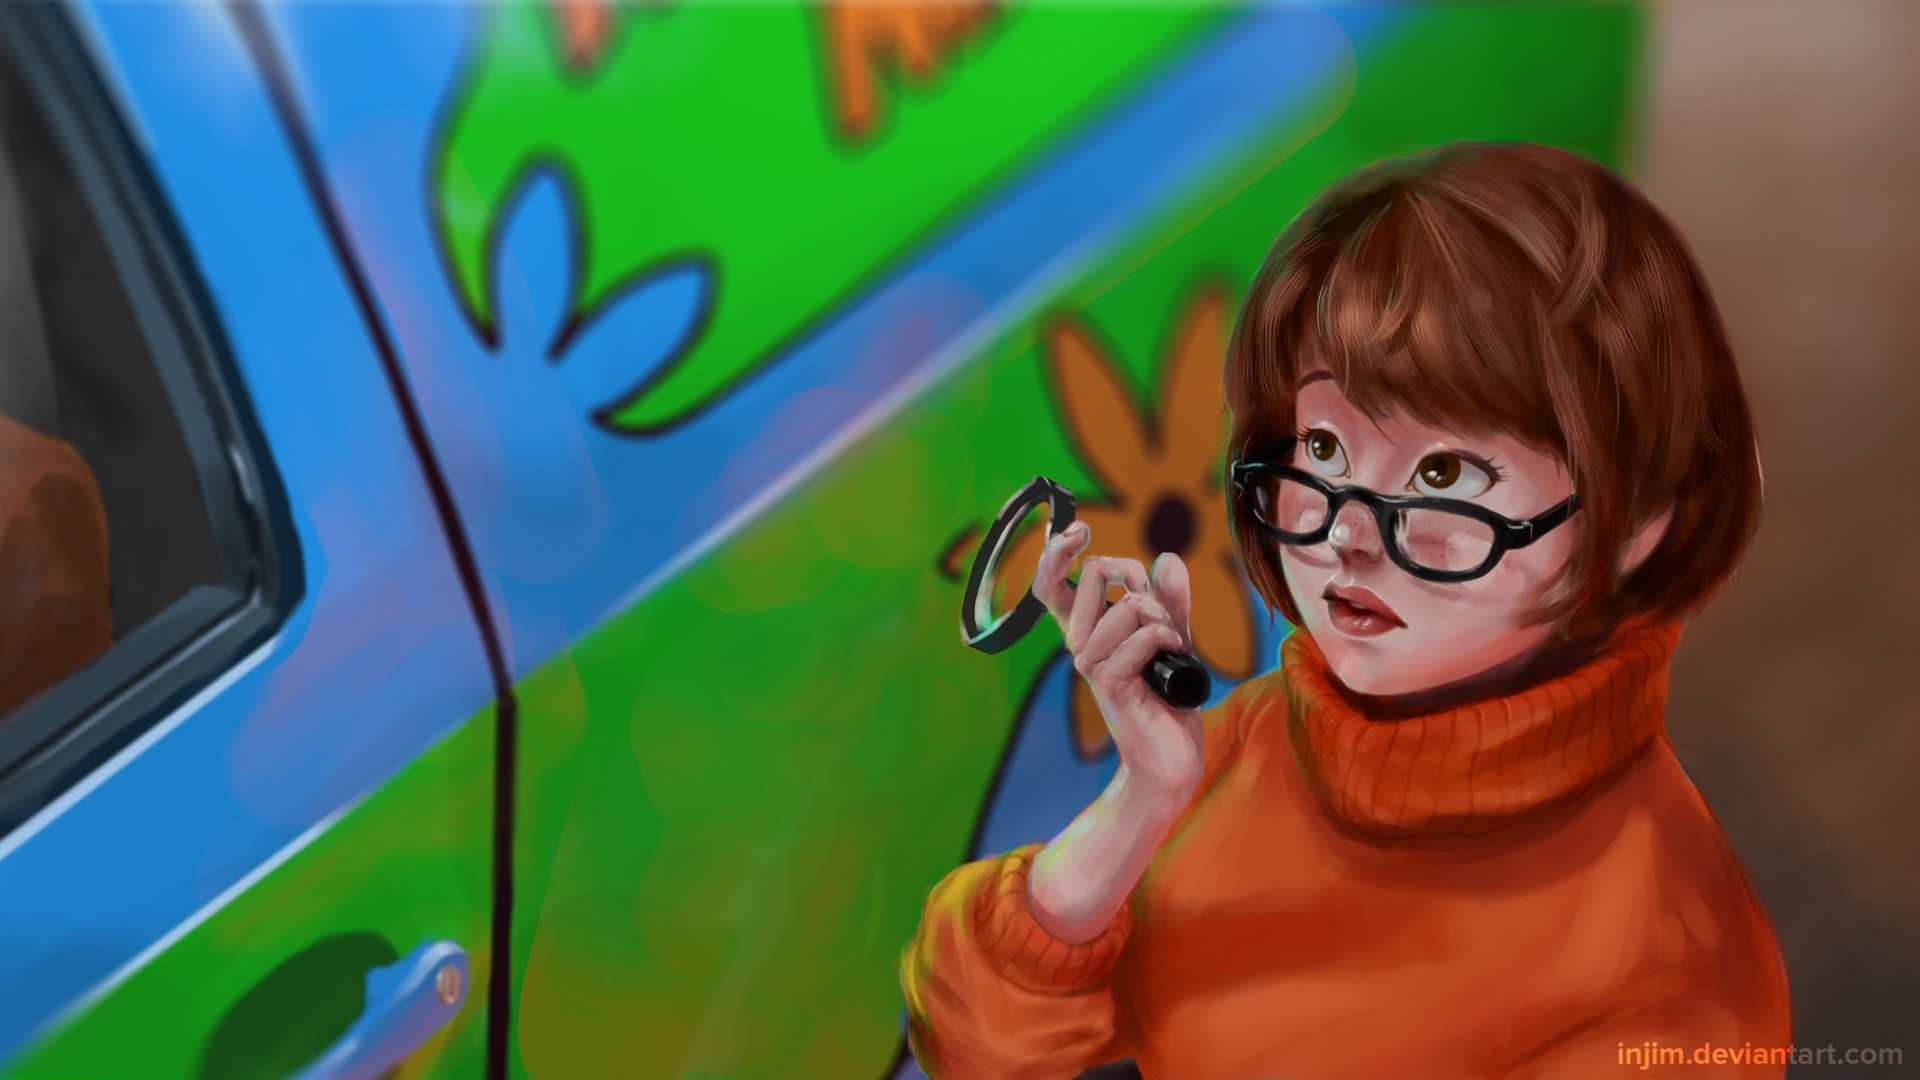 1920x1080 Velma Dinkley, Scooby Doo, Cartoon Network Wallpapers HD / Desktop and  Mobile Backgrounds